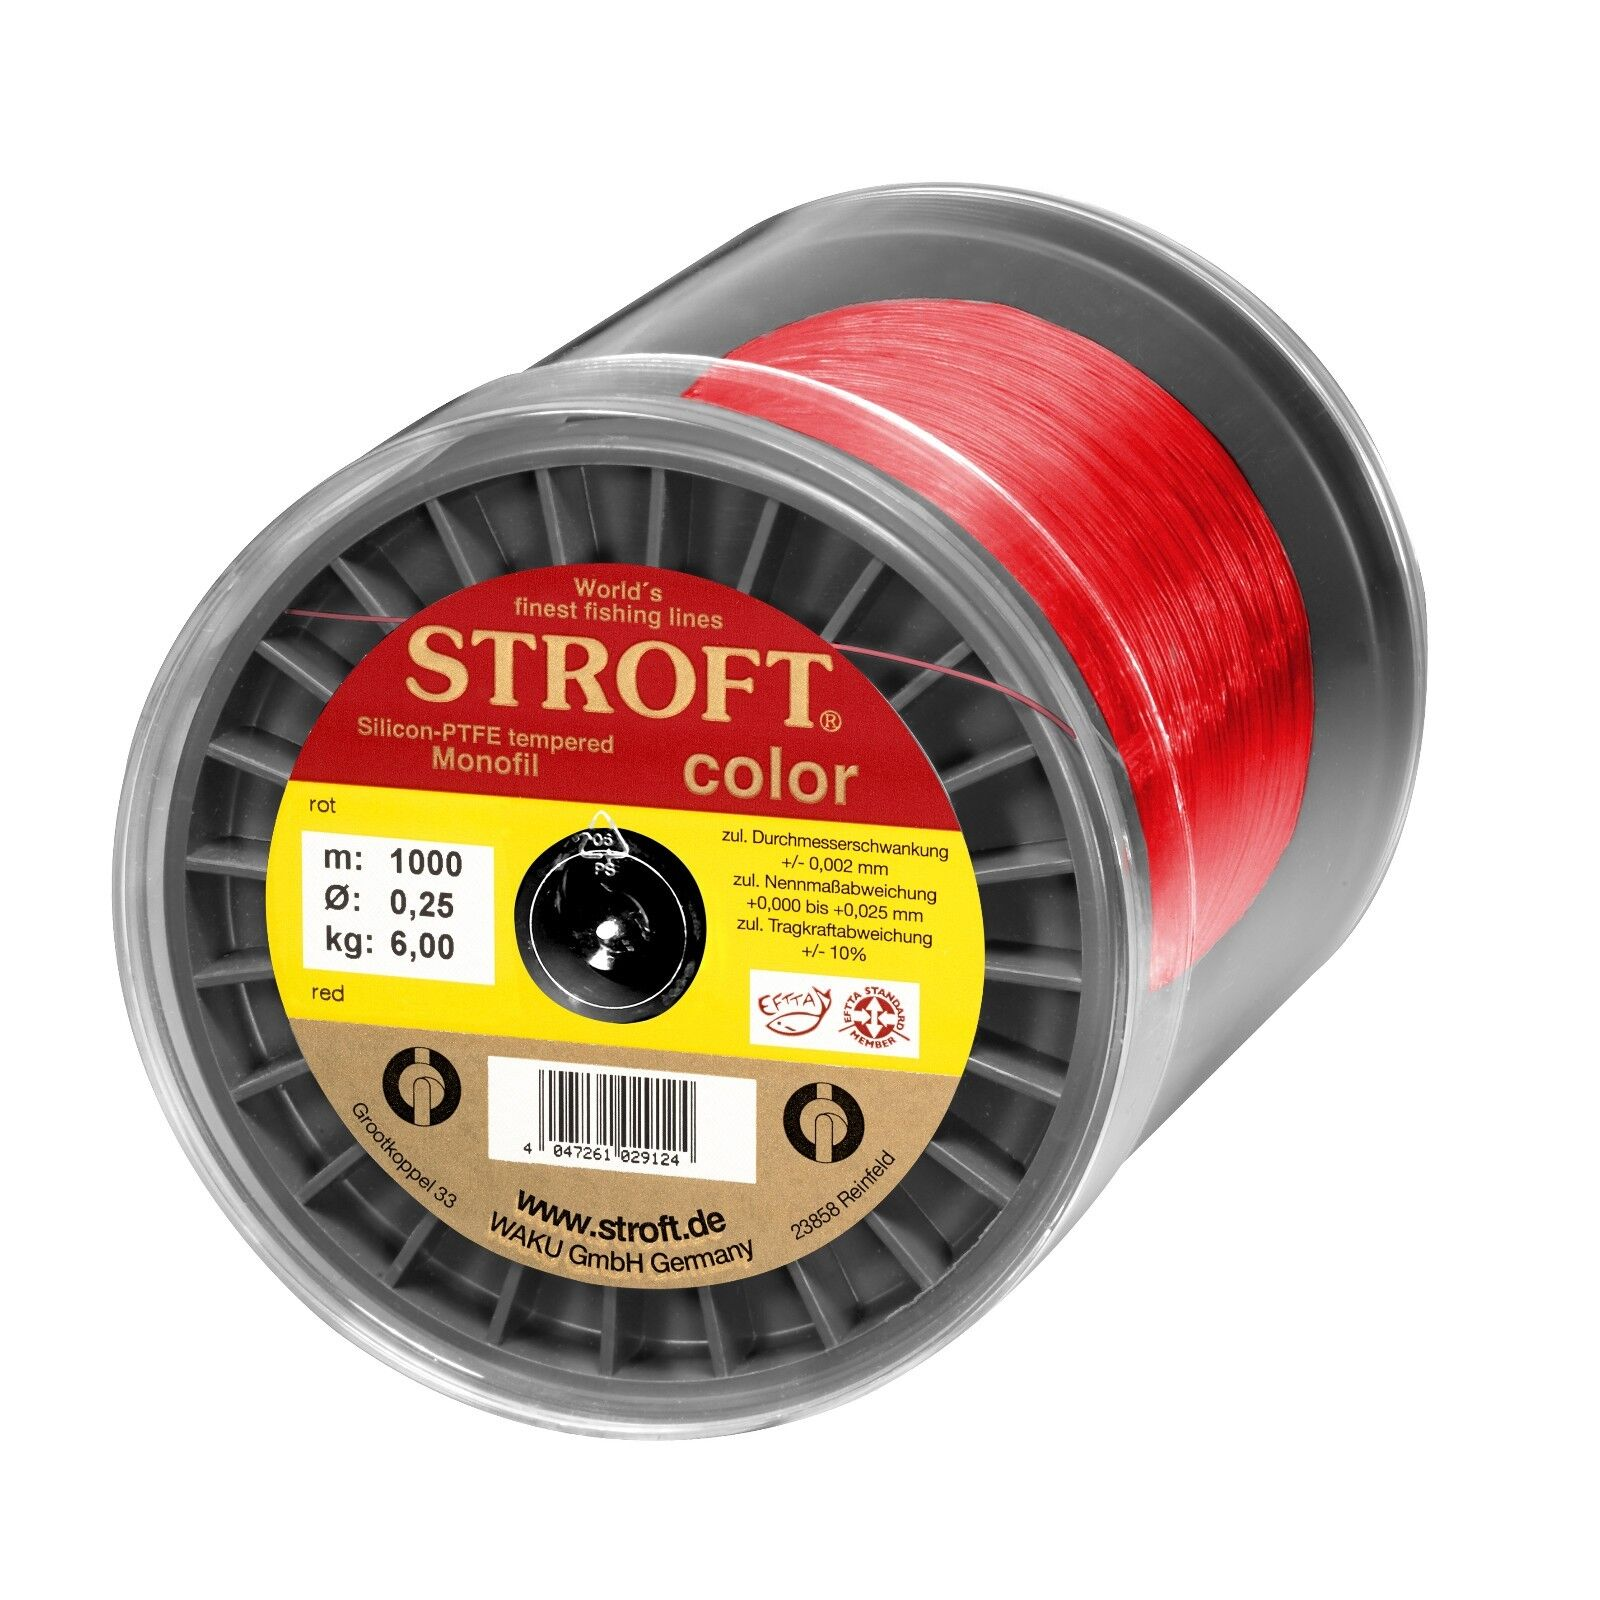 Stroft color red Monofile Angelschnur  500 m + 1000 m Spulen